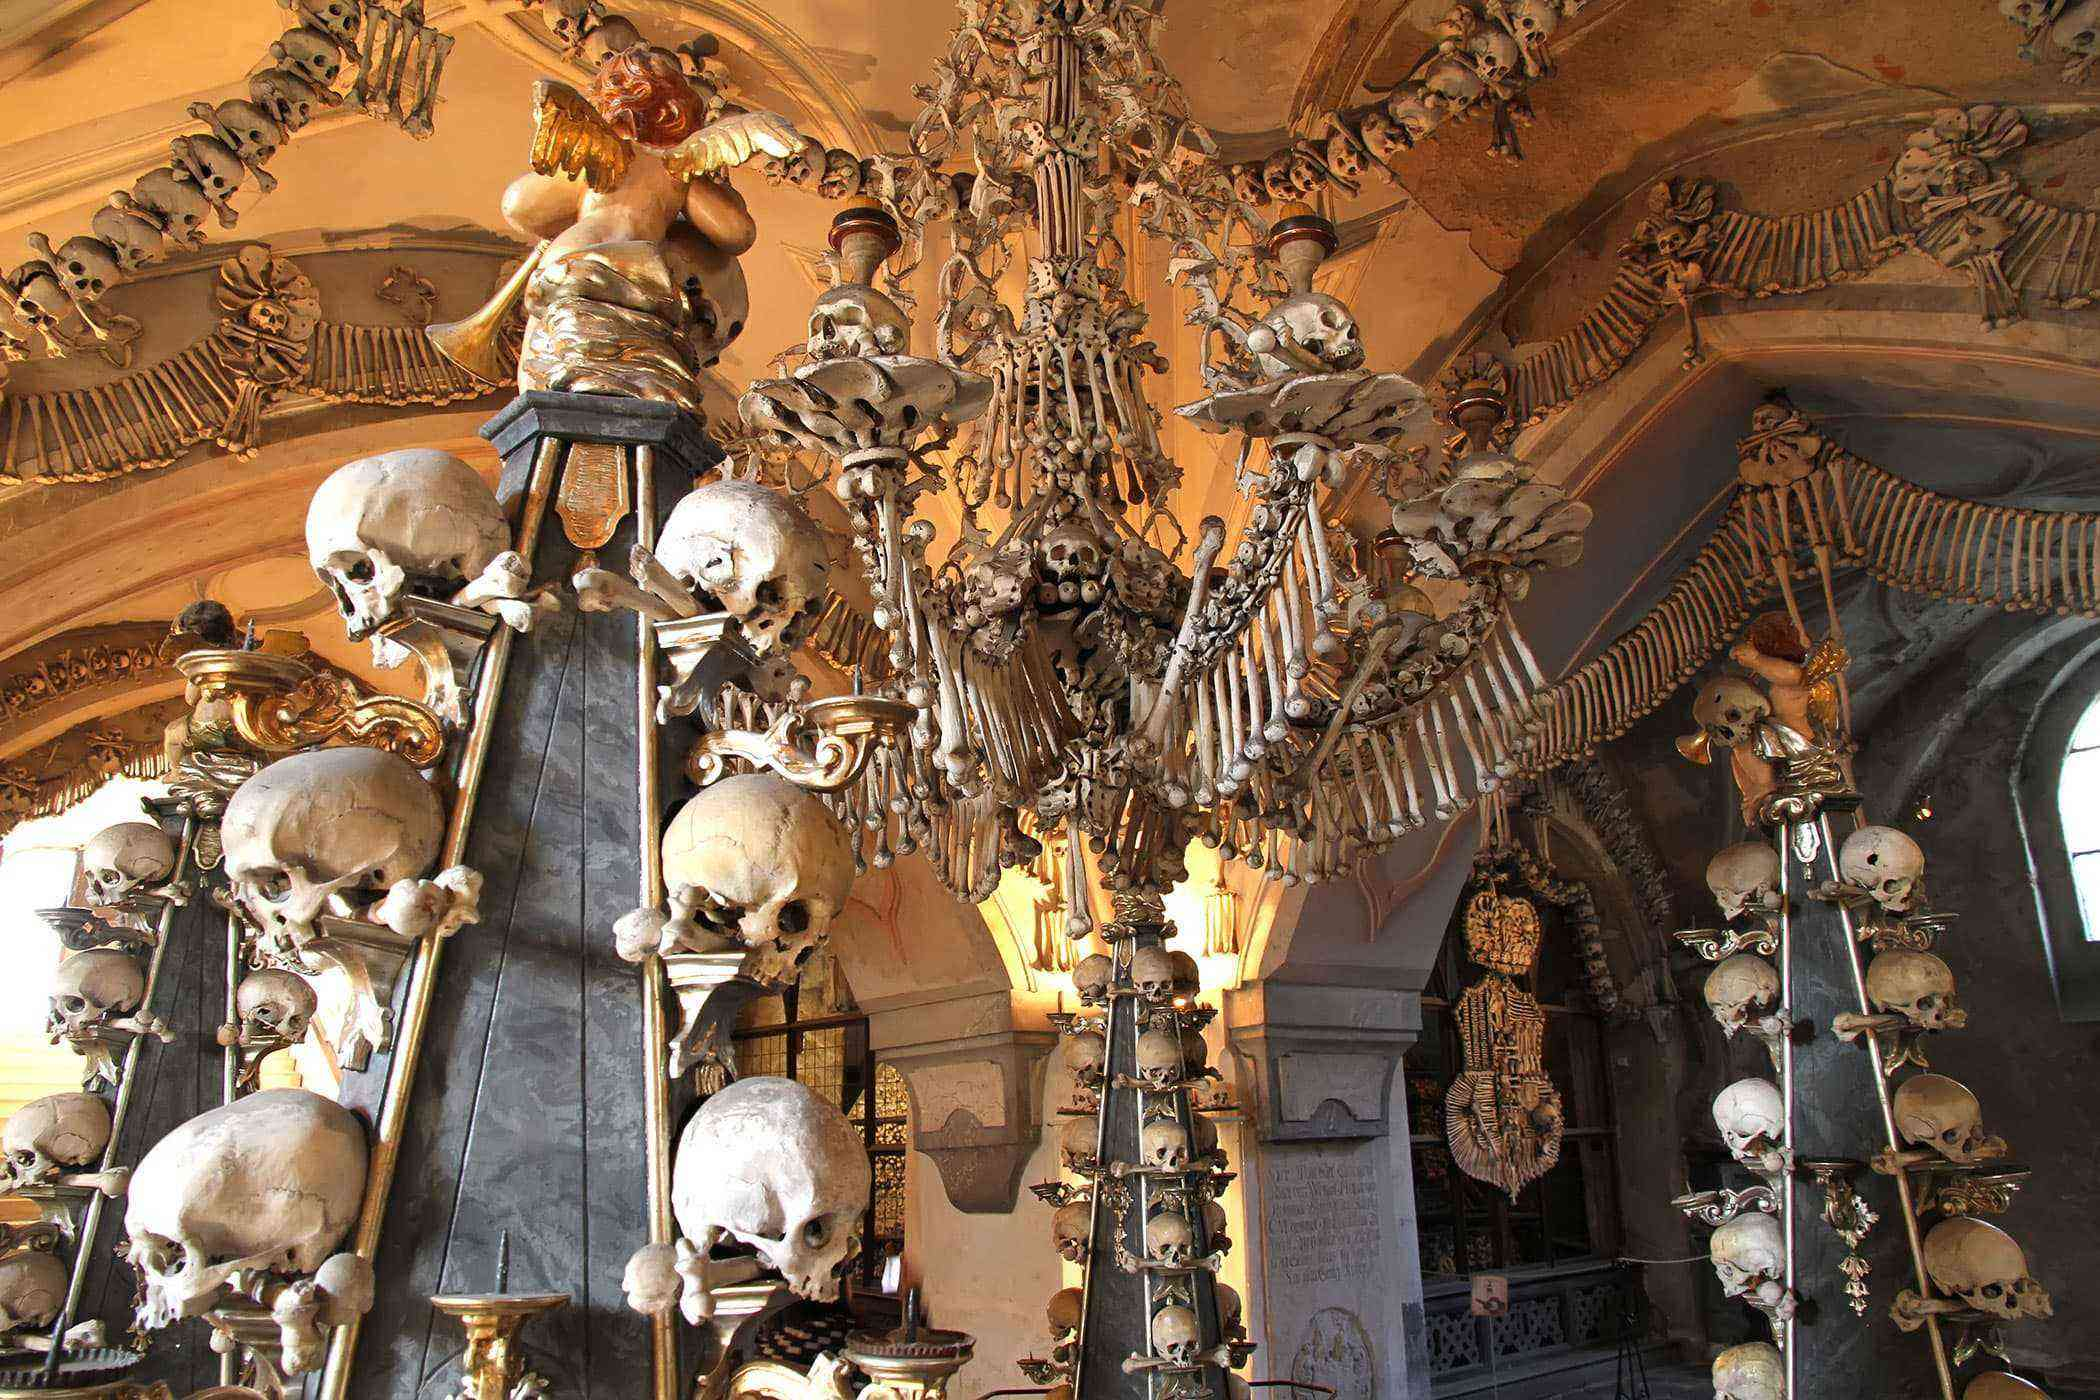 Stuff-Made-Out-Of-Bones-Sedlec-Ossuary-1